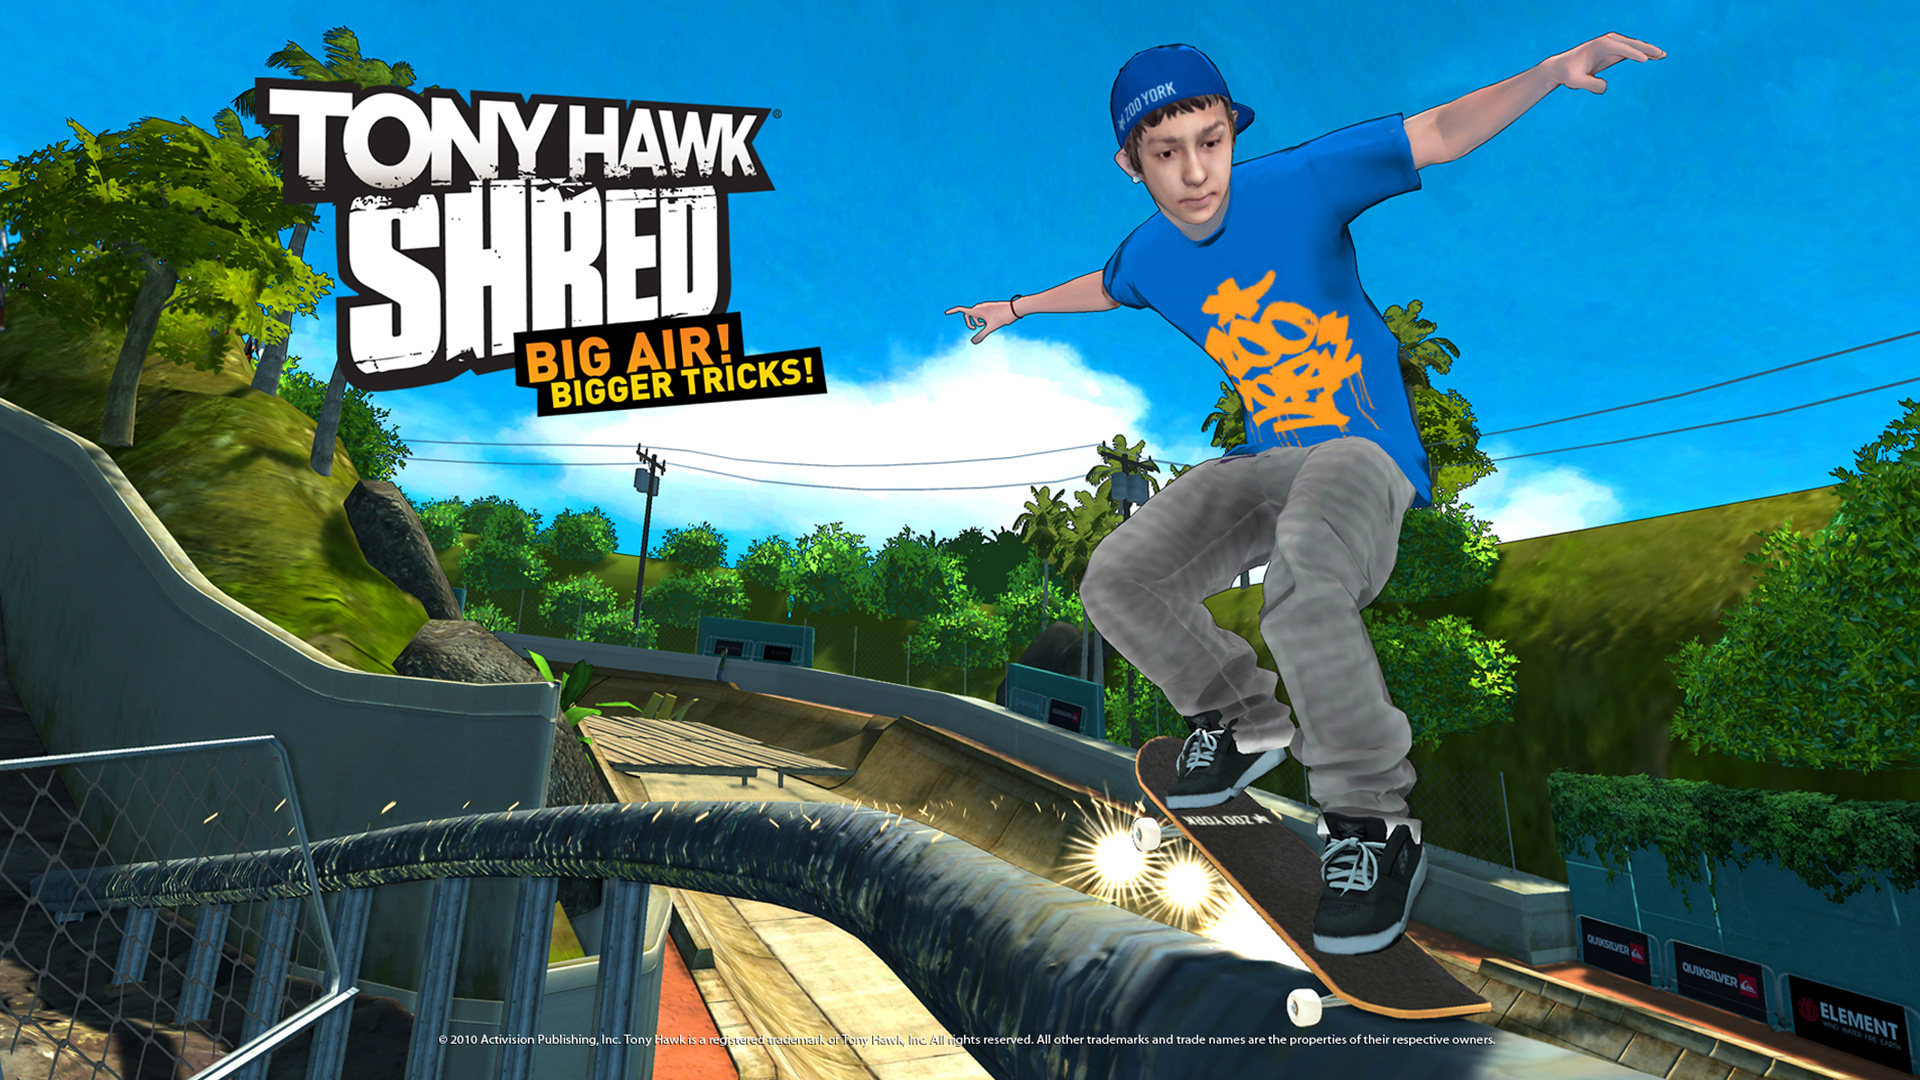 Tony Hawk: Shred Wallpaper in 1920x1080